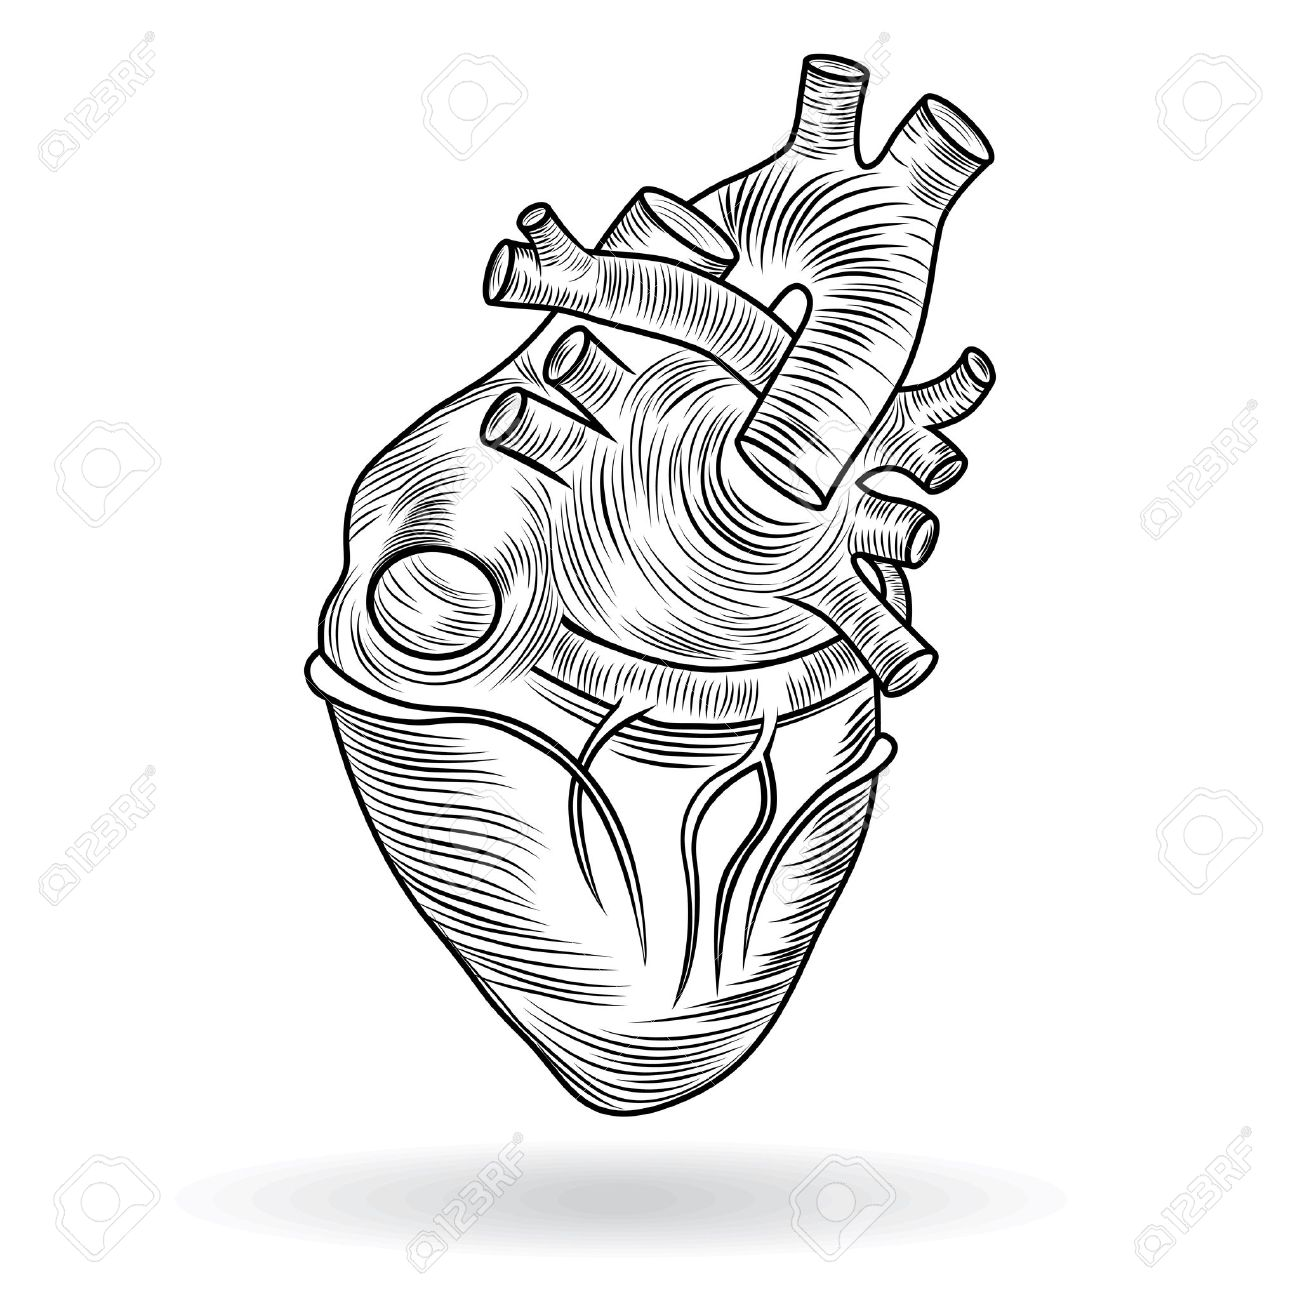 1300x1300 Heart Human Body Anatomy Sketch Isolated On White Background